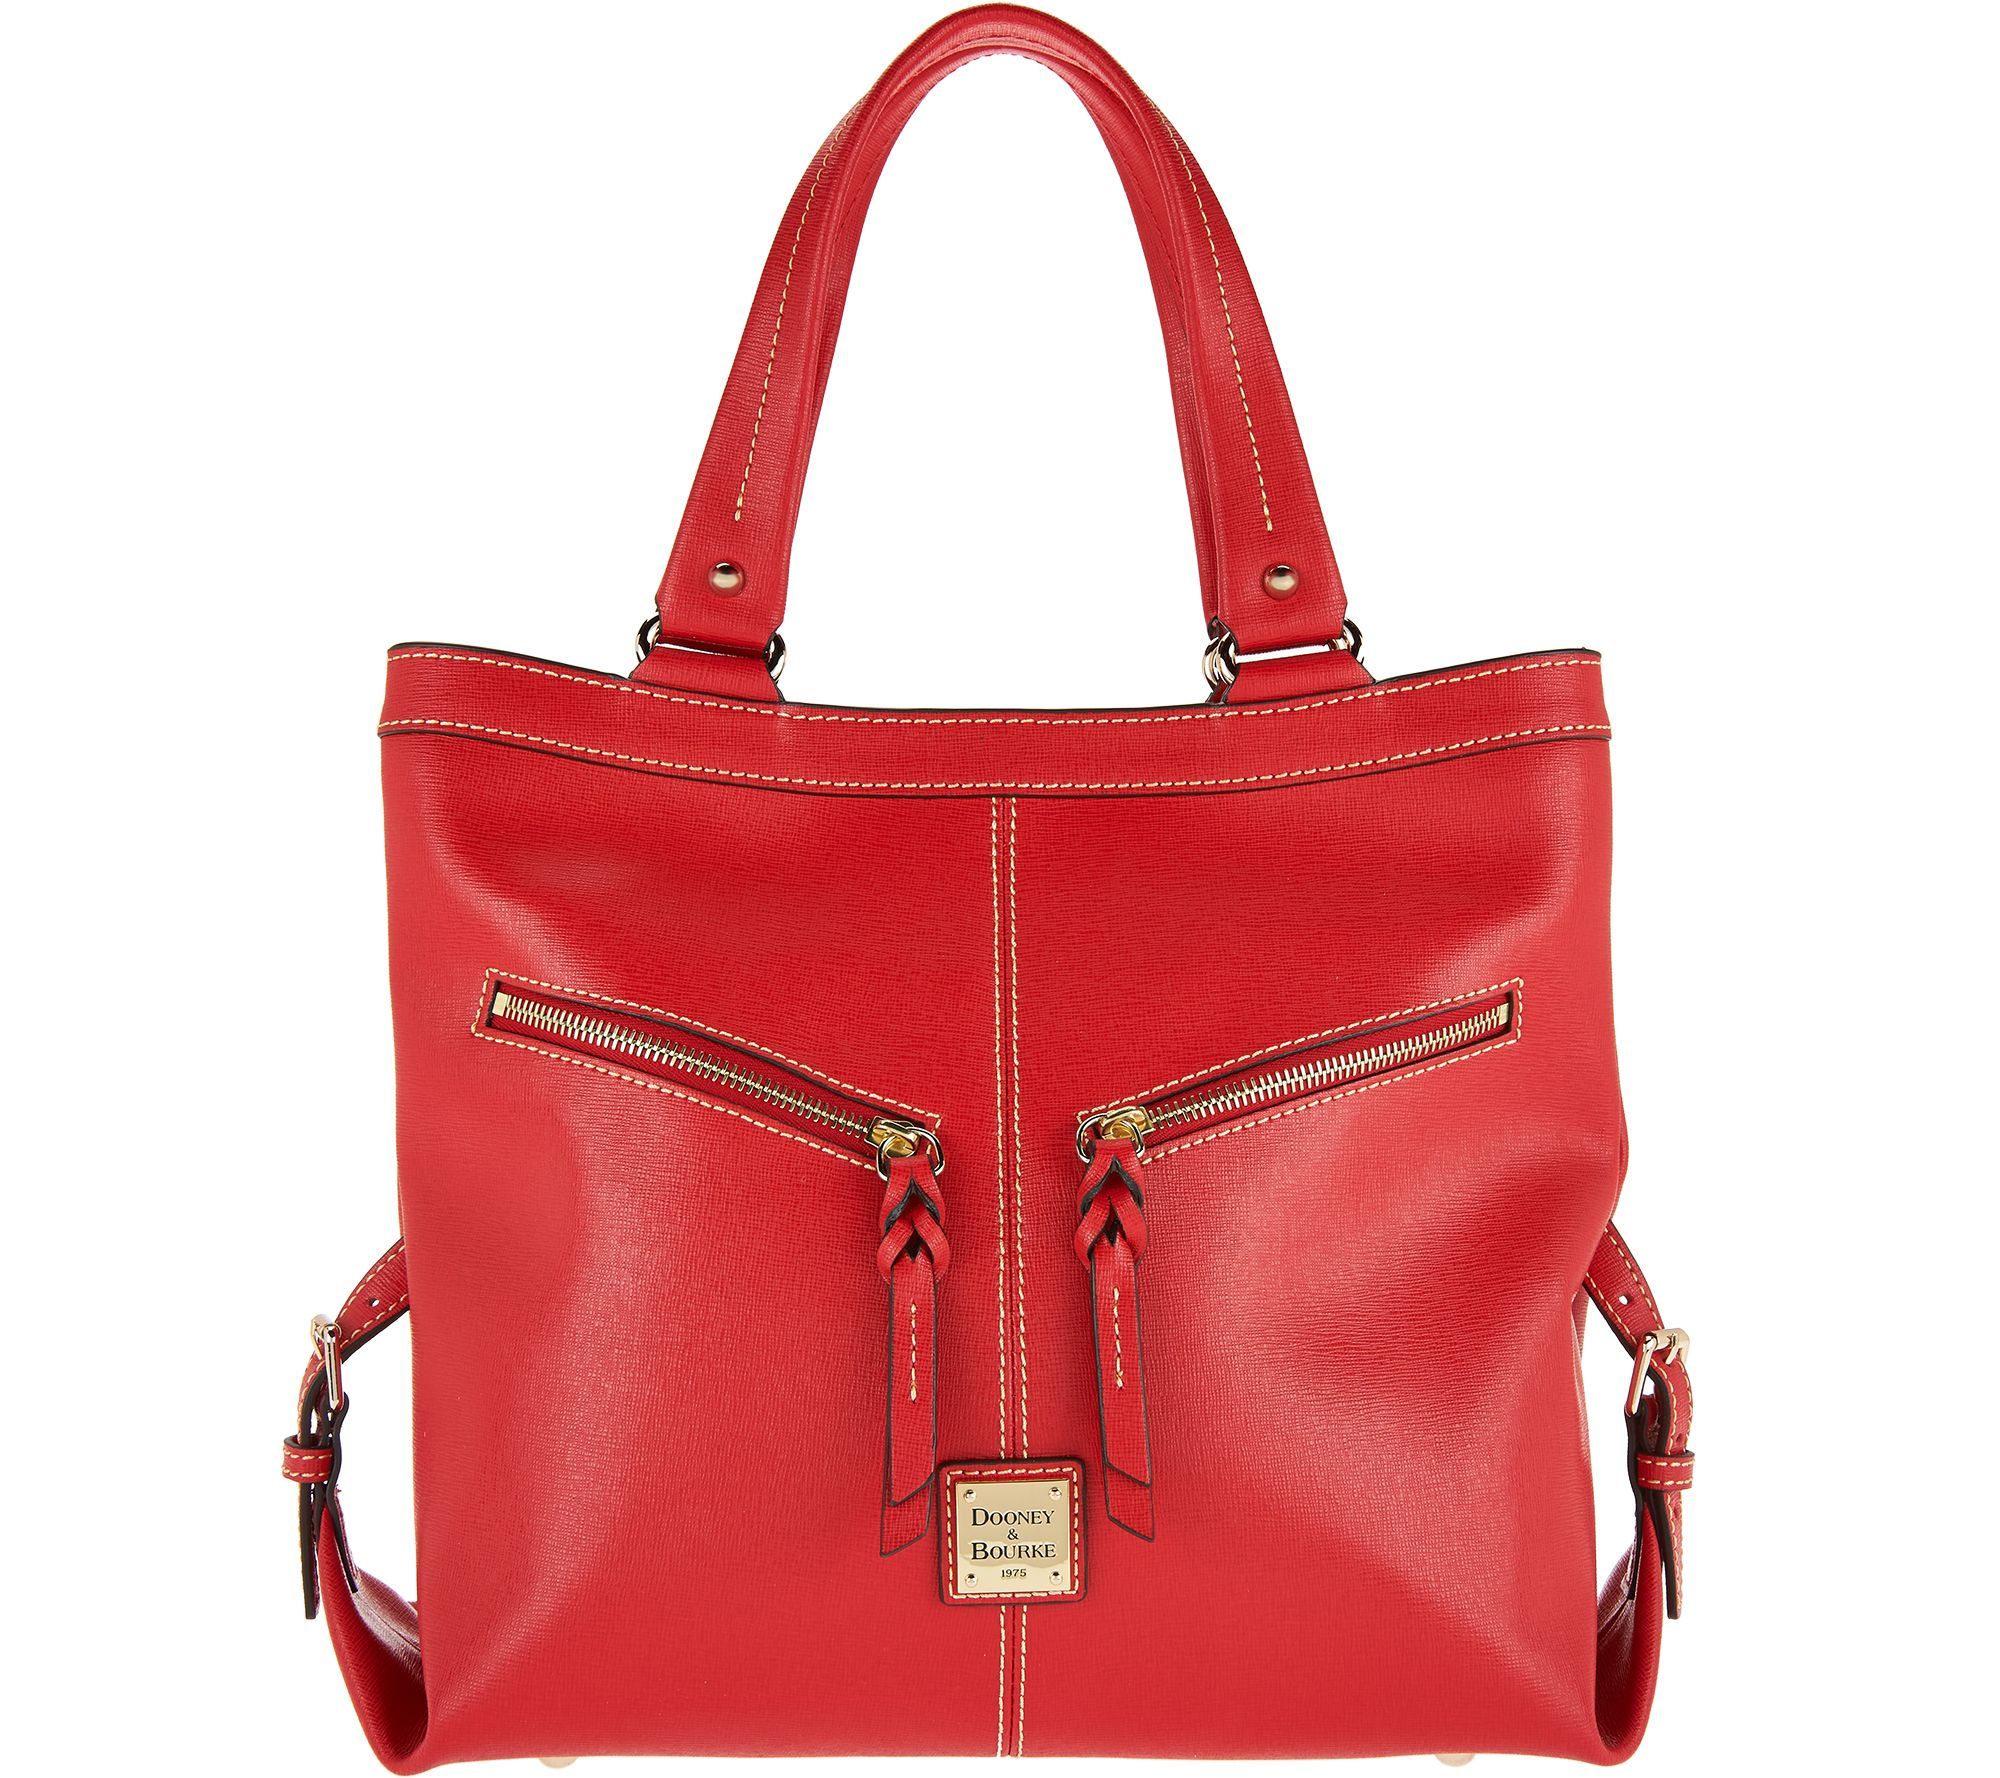 Dooney & Bourke Saffiano Leather Shoulder Bag- Sara - Page 1 — QVC.com